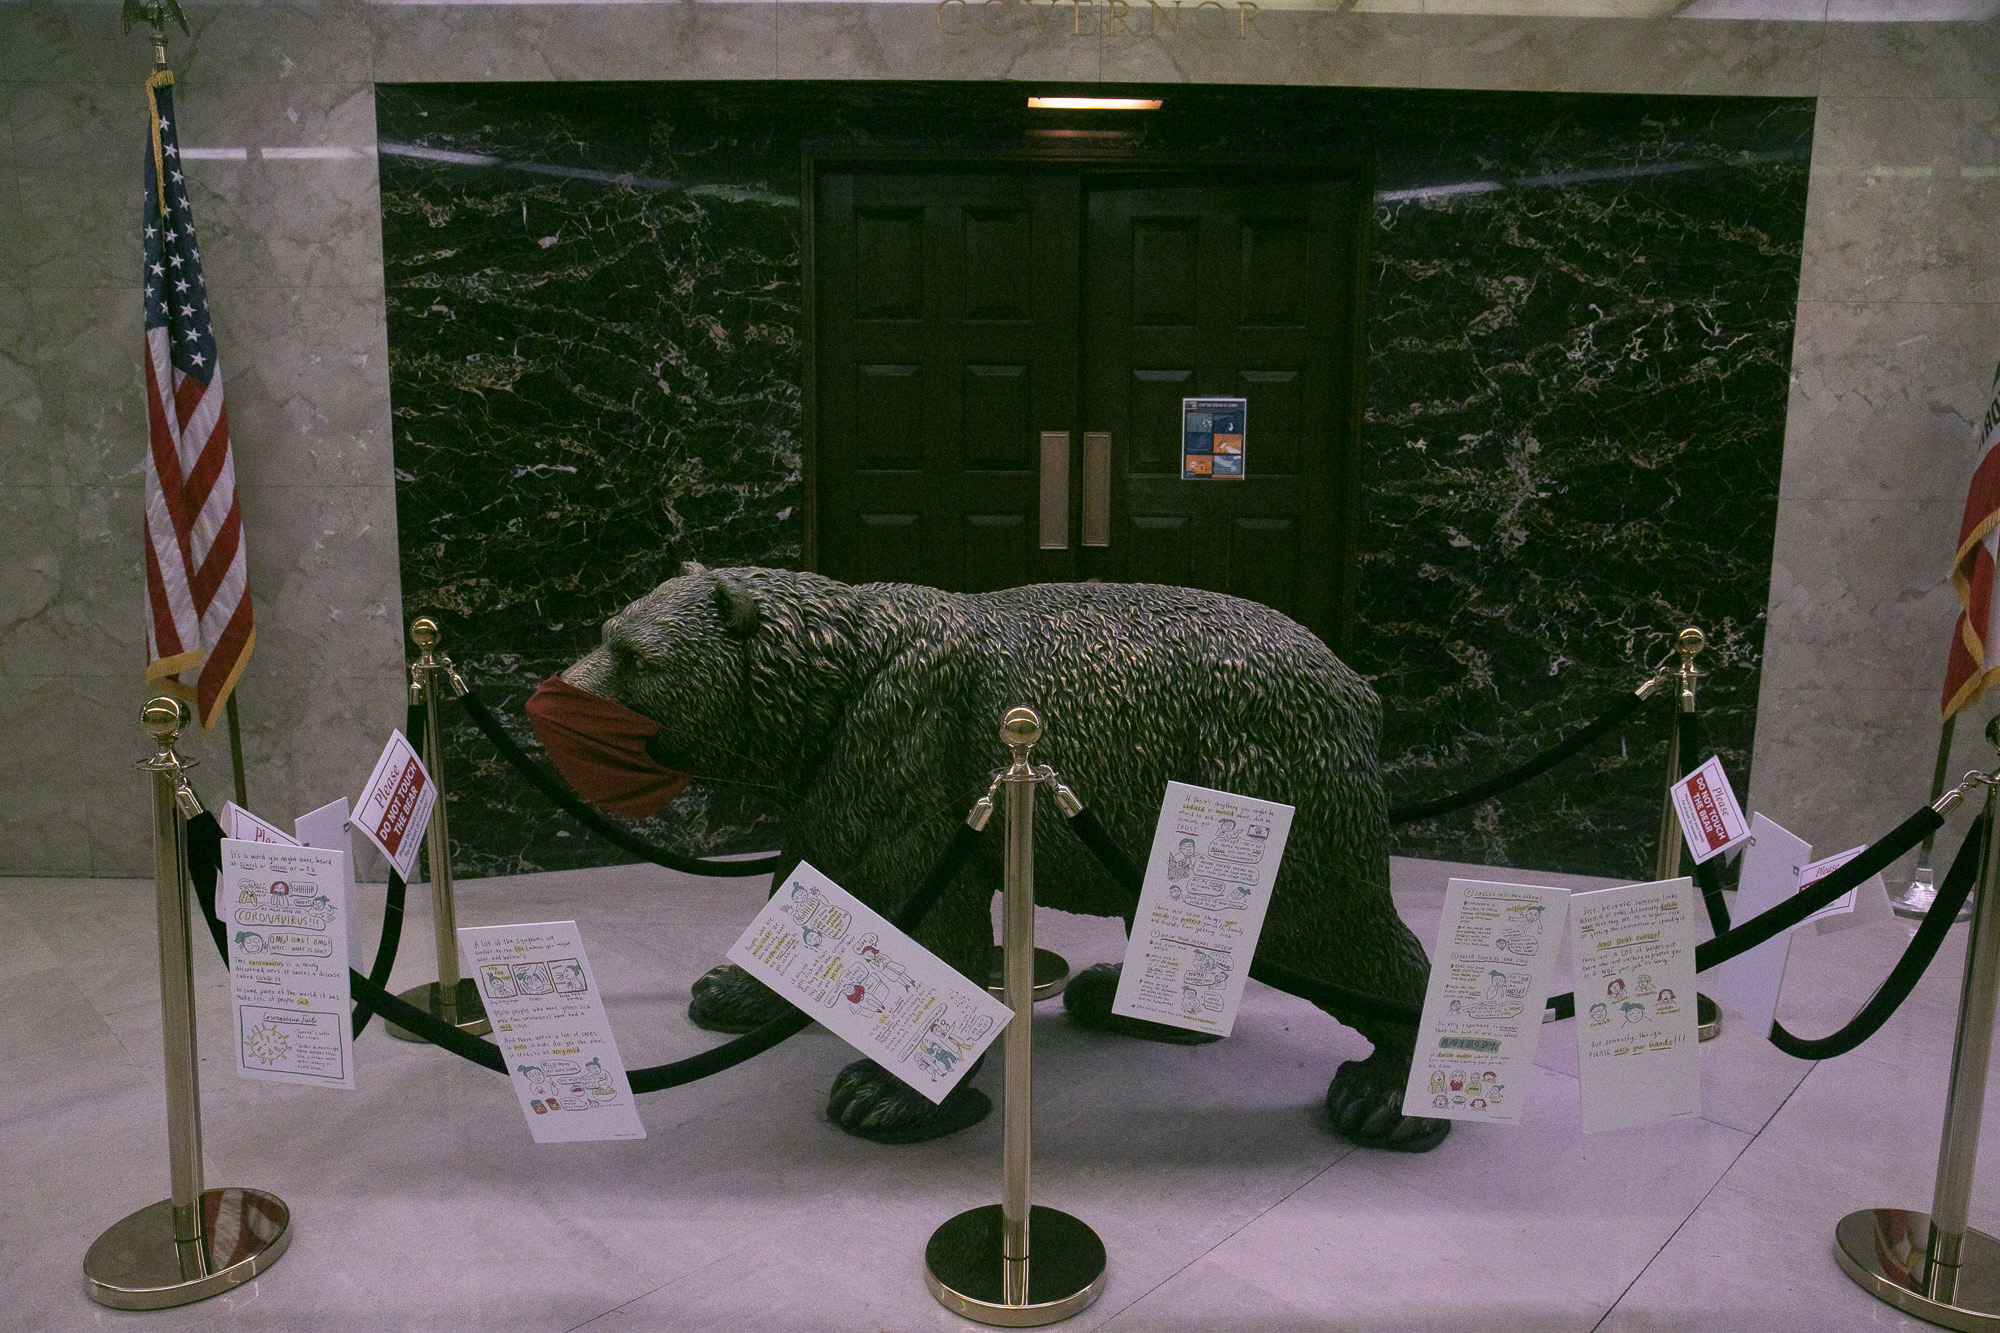 The beat statue in front of the governor's office sports a face mask and is surrounded by signs encouraging social distancing and hand washing on Aug. 31, 2020. Photo by Anne Wernikoff for CalMatters